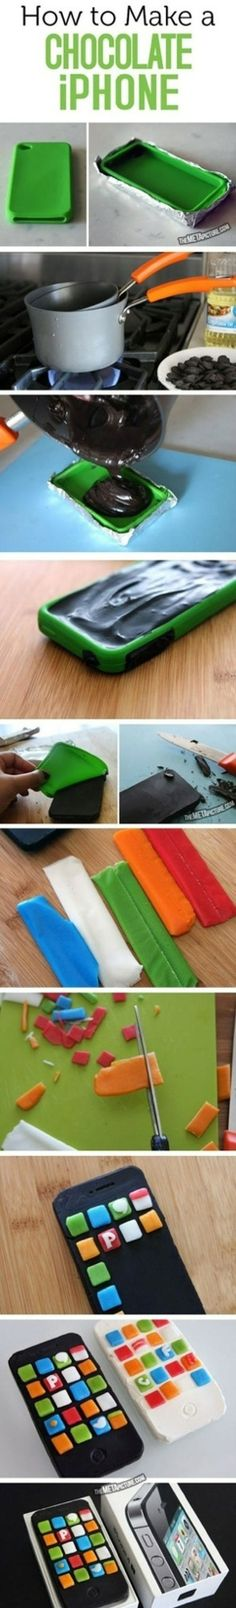 Awesome DIY to make an edible iPhone